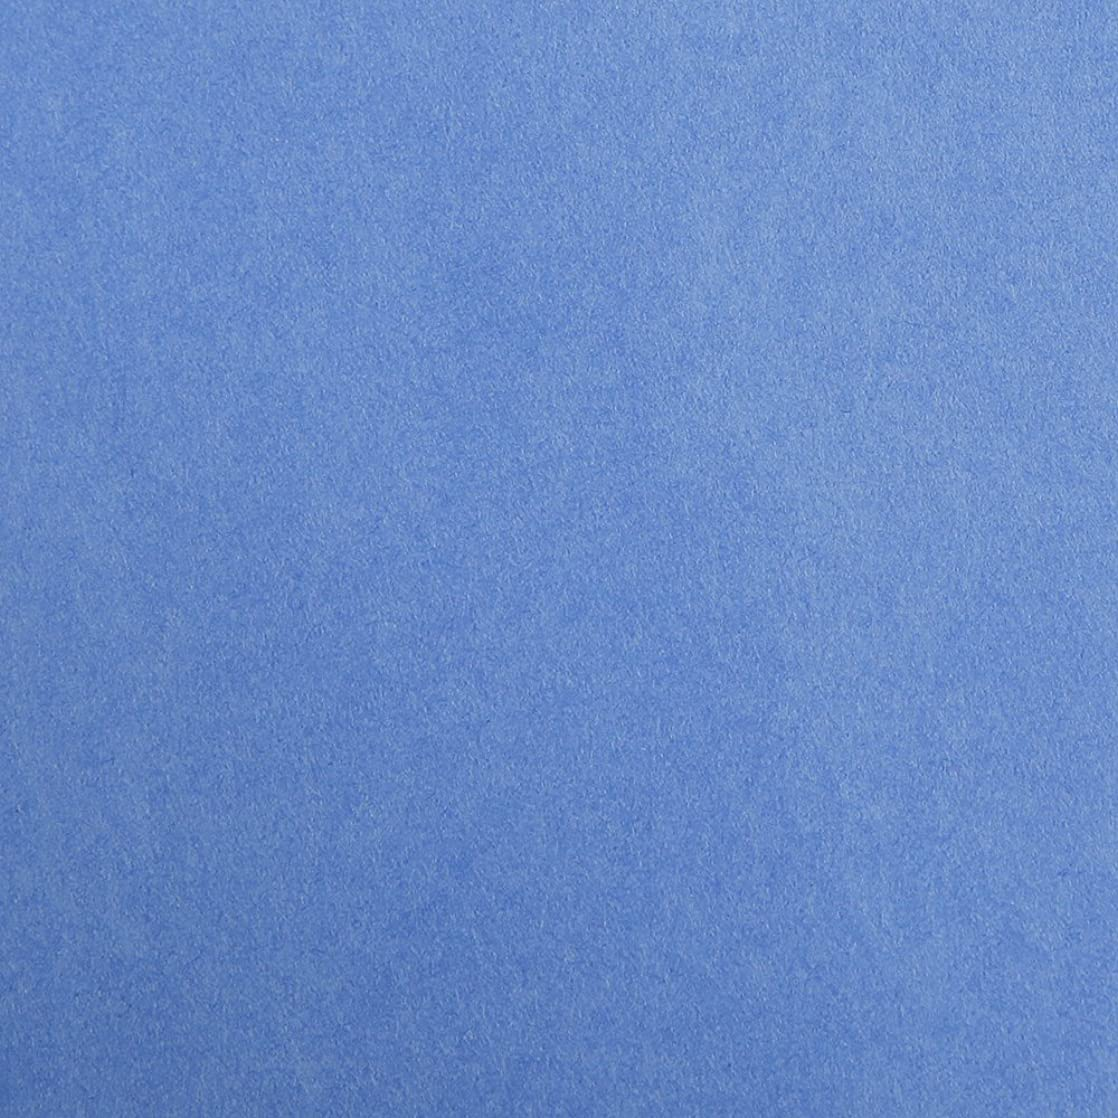 Clairefontaine Maya Coloured Smooth Drawing Paper, 120 g, 50 x 70 cm - Royal Blue, Pack of 25 Sheets rewaydit23319